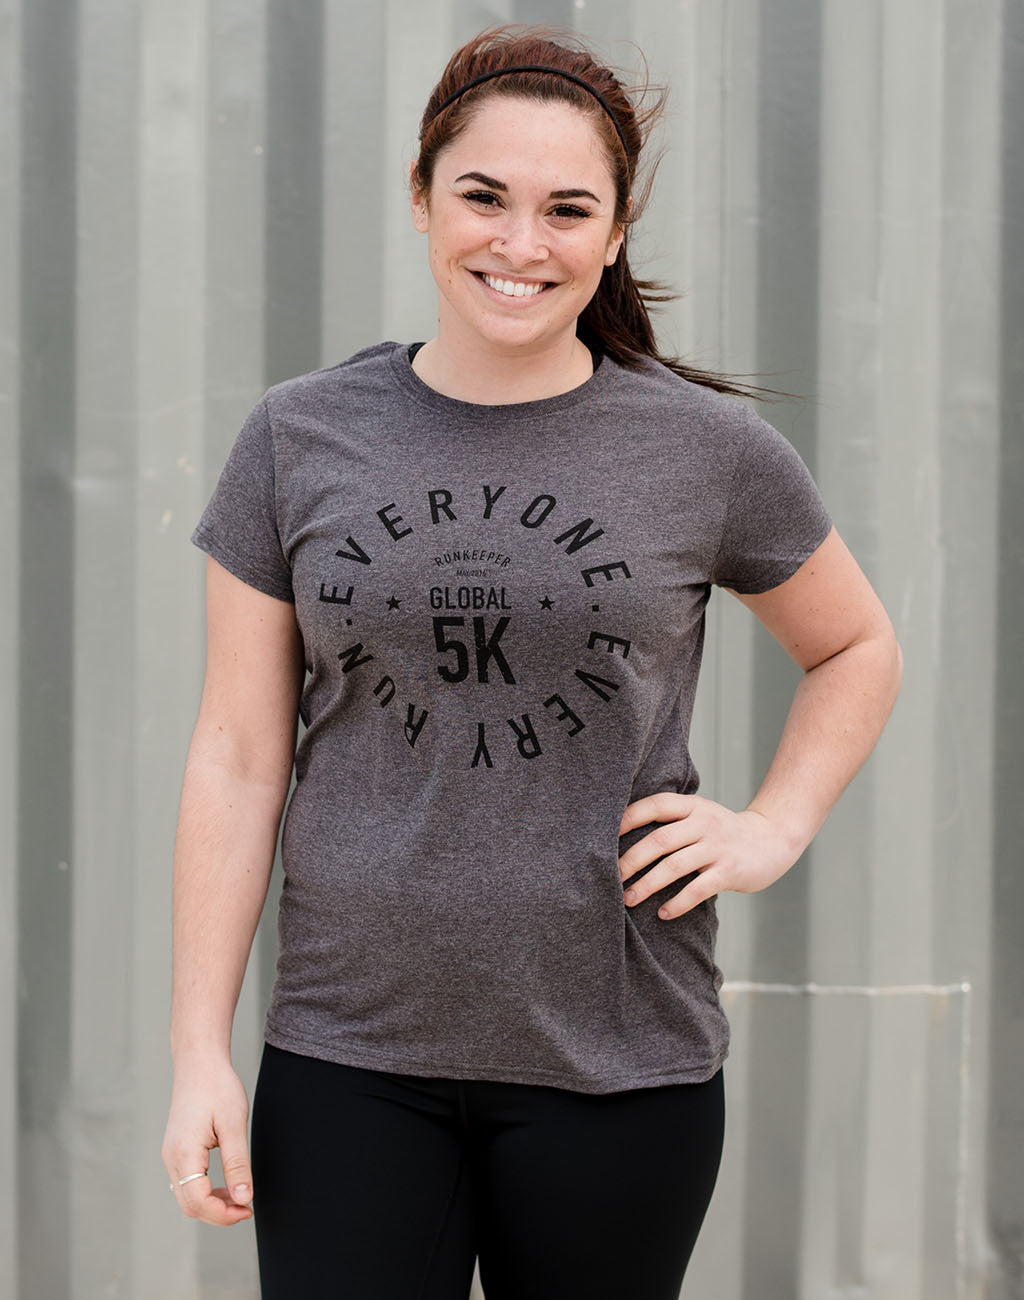 Global 5K - Women's '5K Badge' Cotton Blend Tee